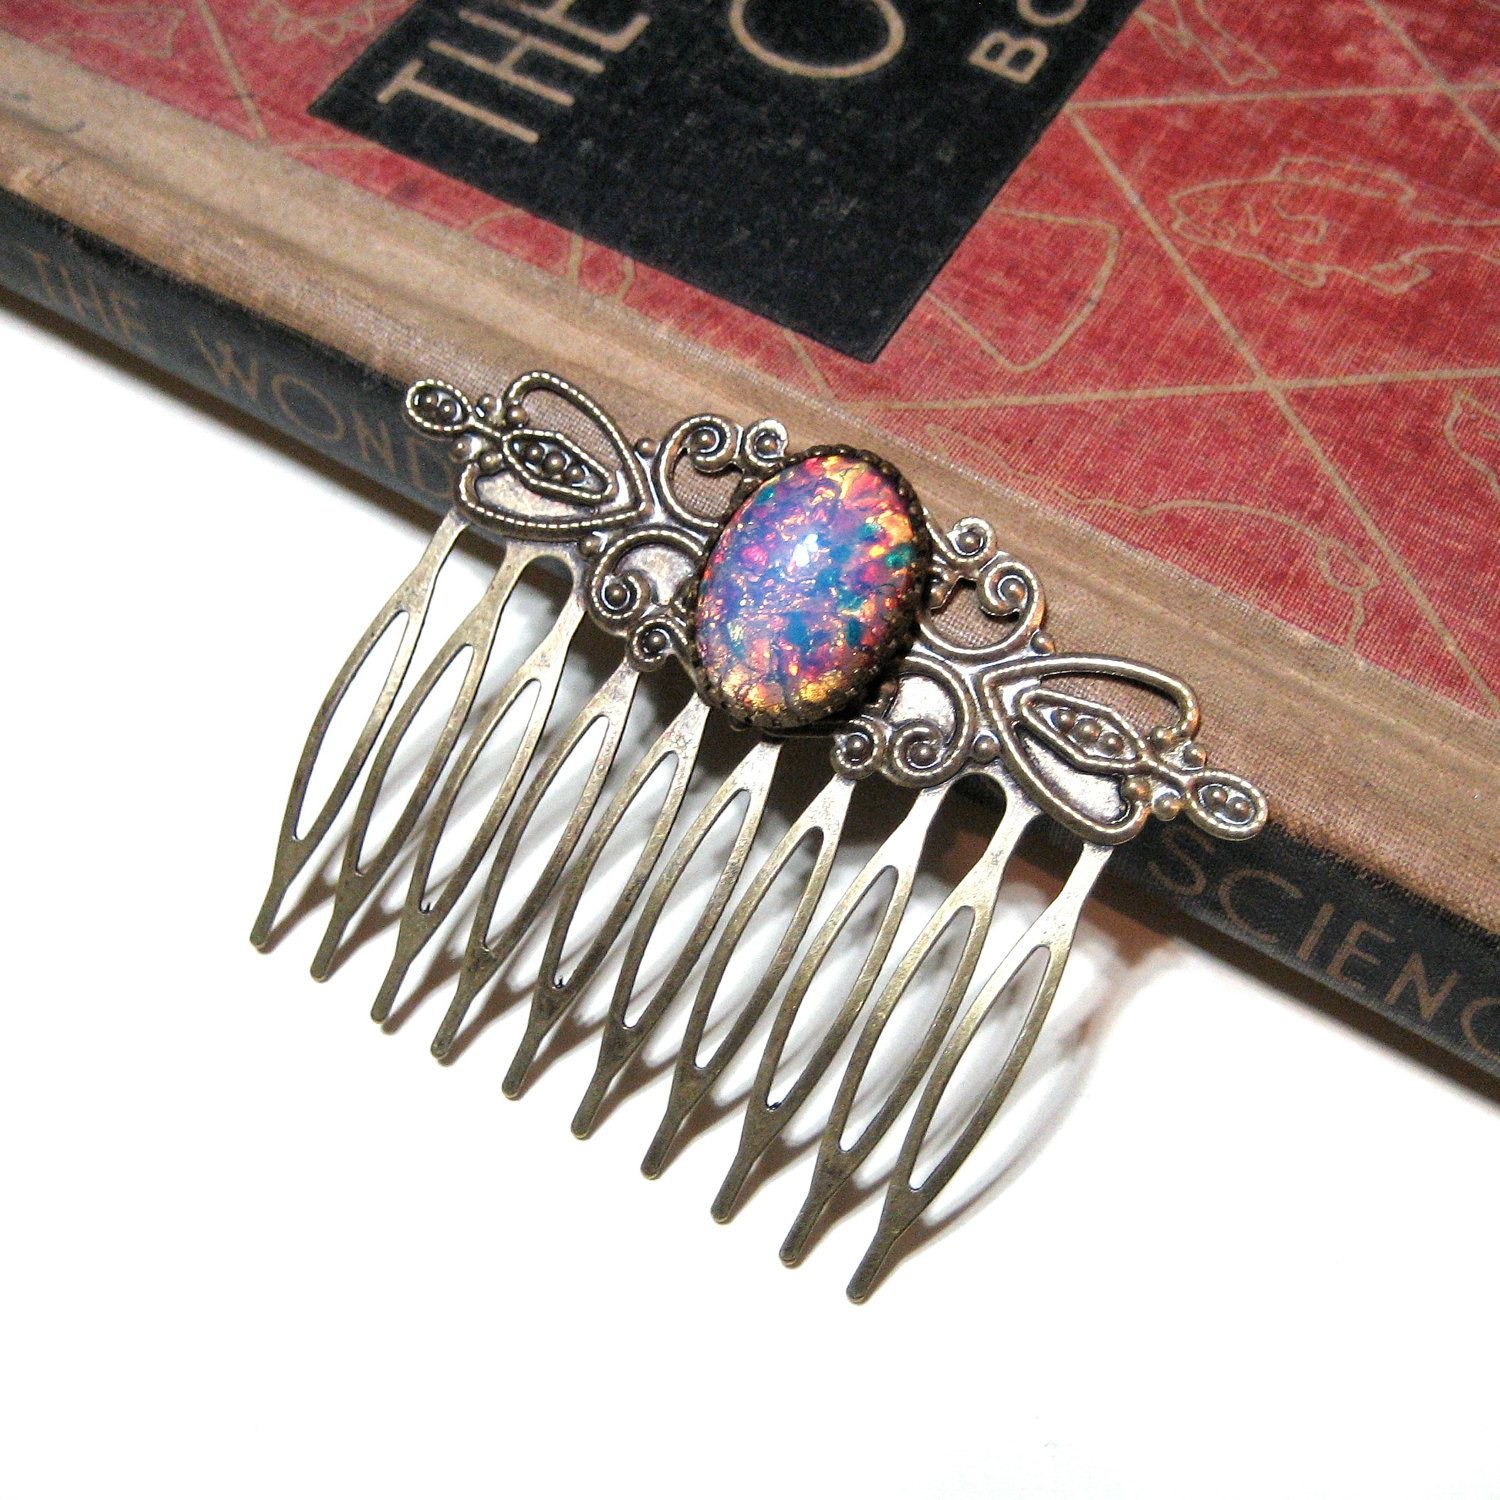 Vintage Pink Harlequin Fire Opal Hair Comb - Antiqued Gold - Antique Brass - WWII. $24.00, via Etsy.